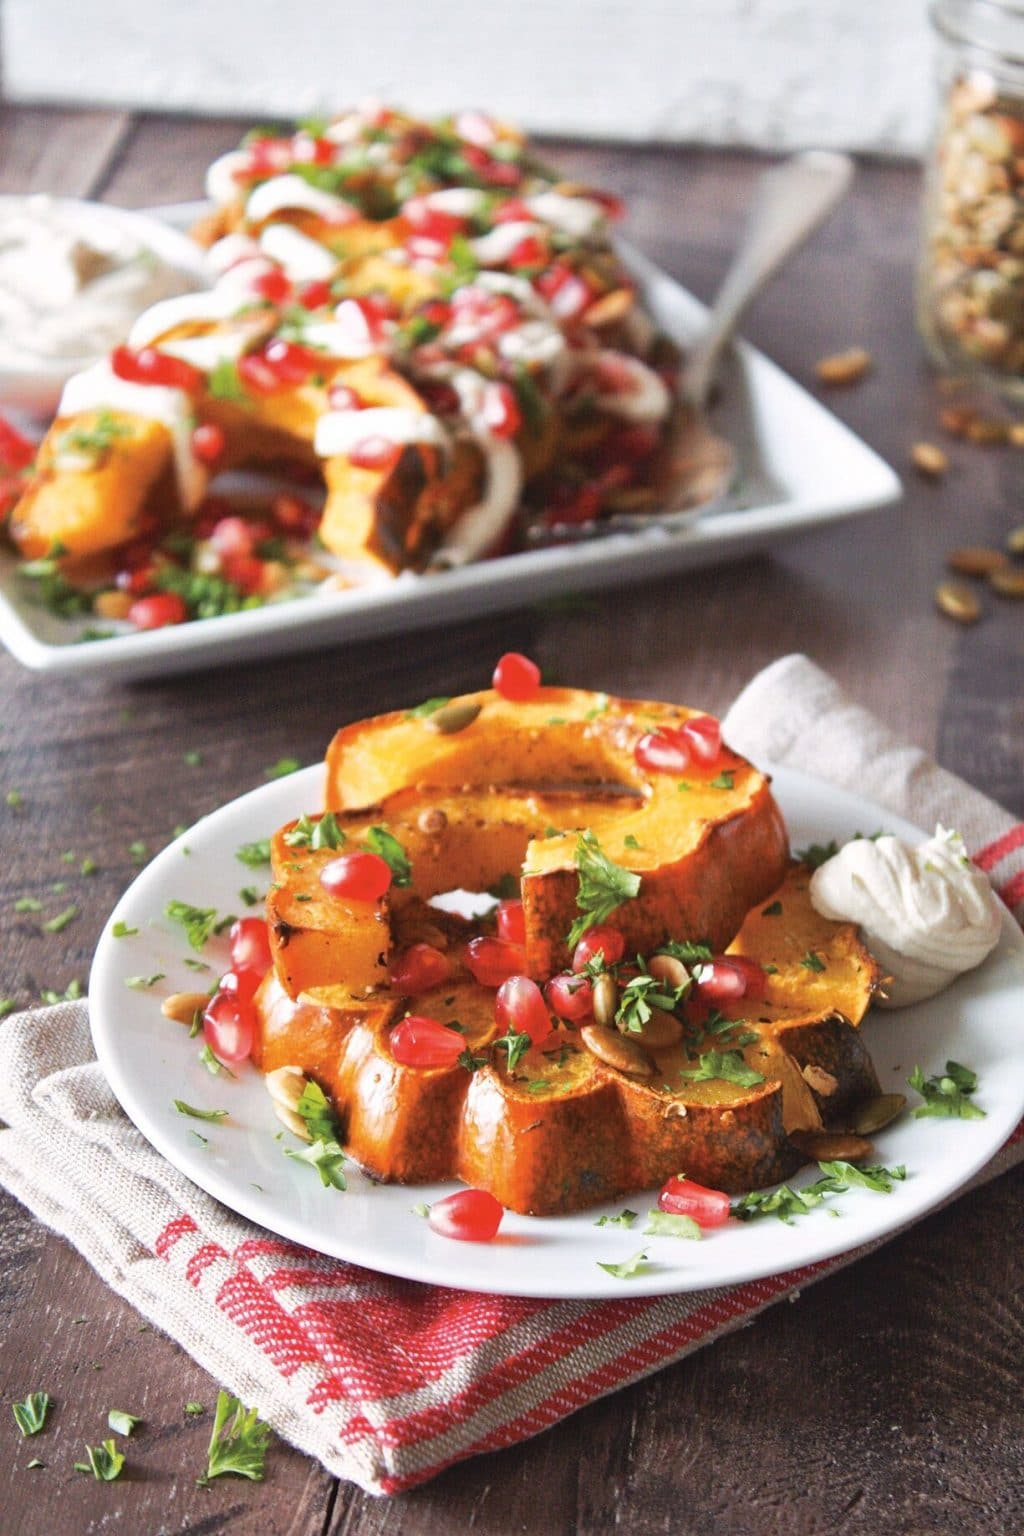 Roasted butternut squash with garam masala on a white plate with a platter of the recipe in the background